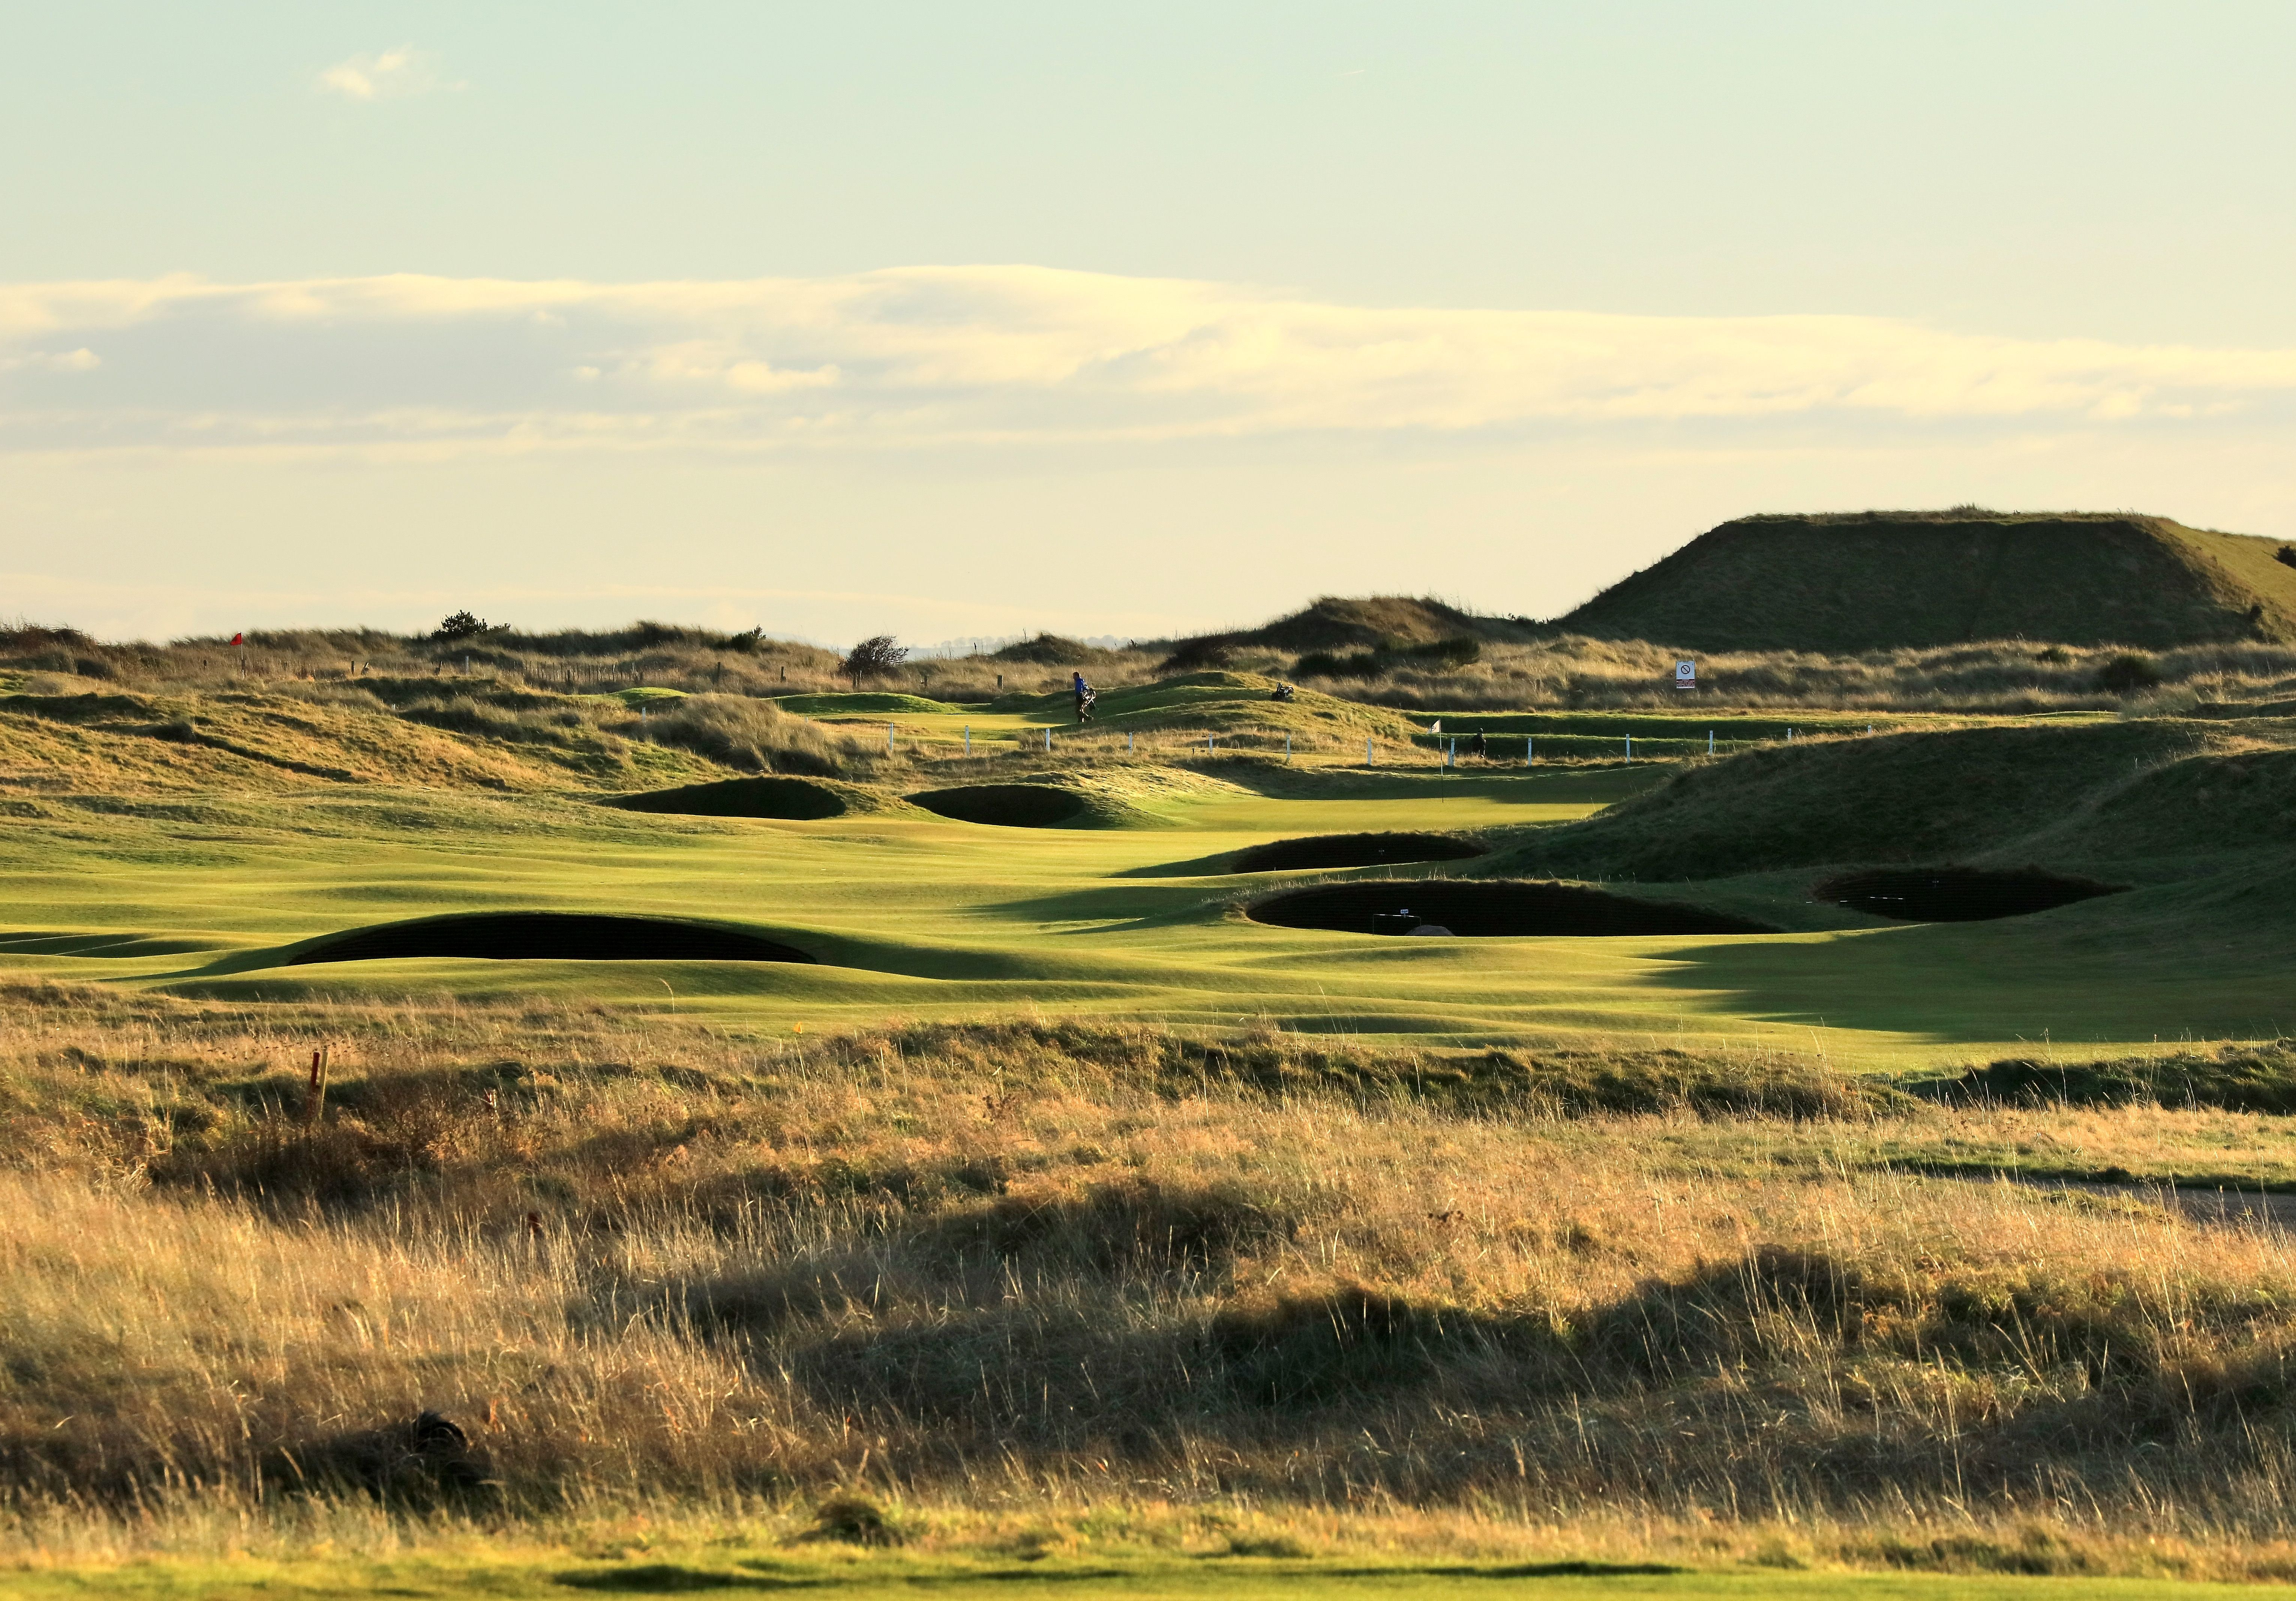 The par-4 second hole, named Gulley, on the Championship Links at Carnoustie Golf Links